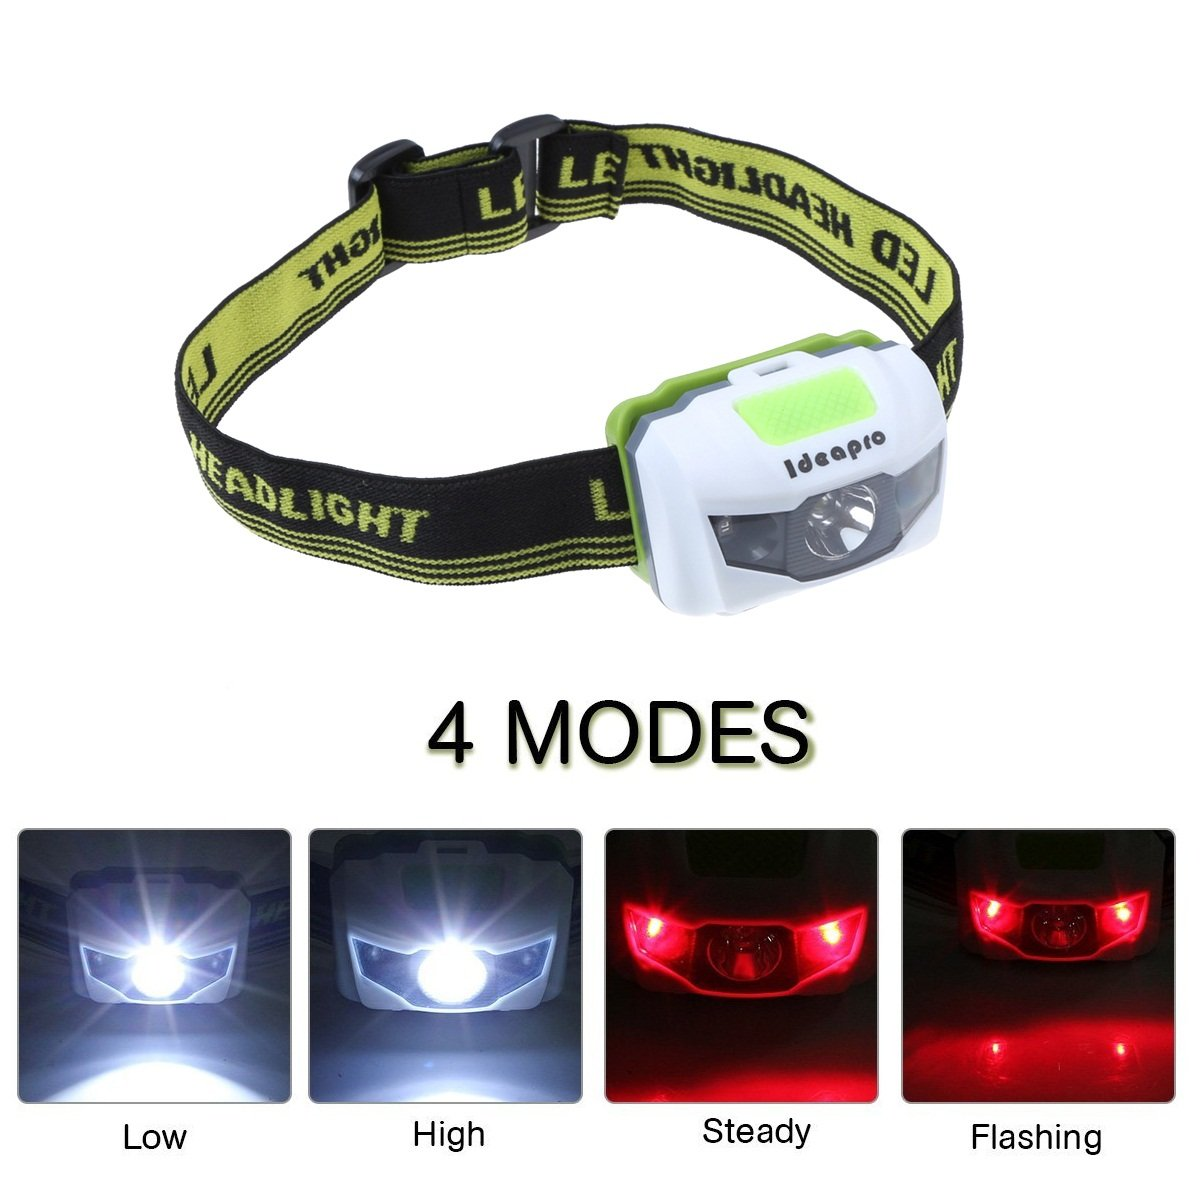 LED Headlamp Batteries Powered Head light Adjustable Waterproof Super Bright Flashlight Headlight with Red Strobe for Outdoor Running Fishing Hunting Camping Hiking Walking and Kids (Green)